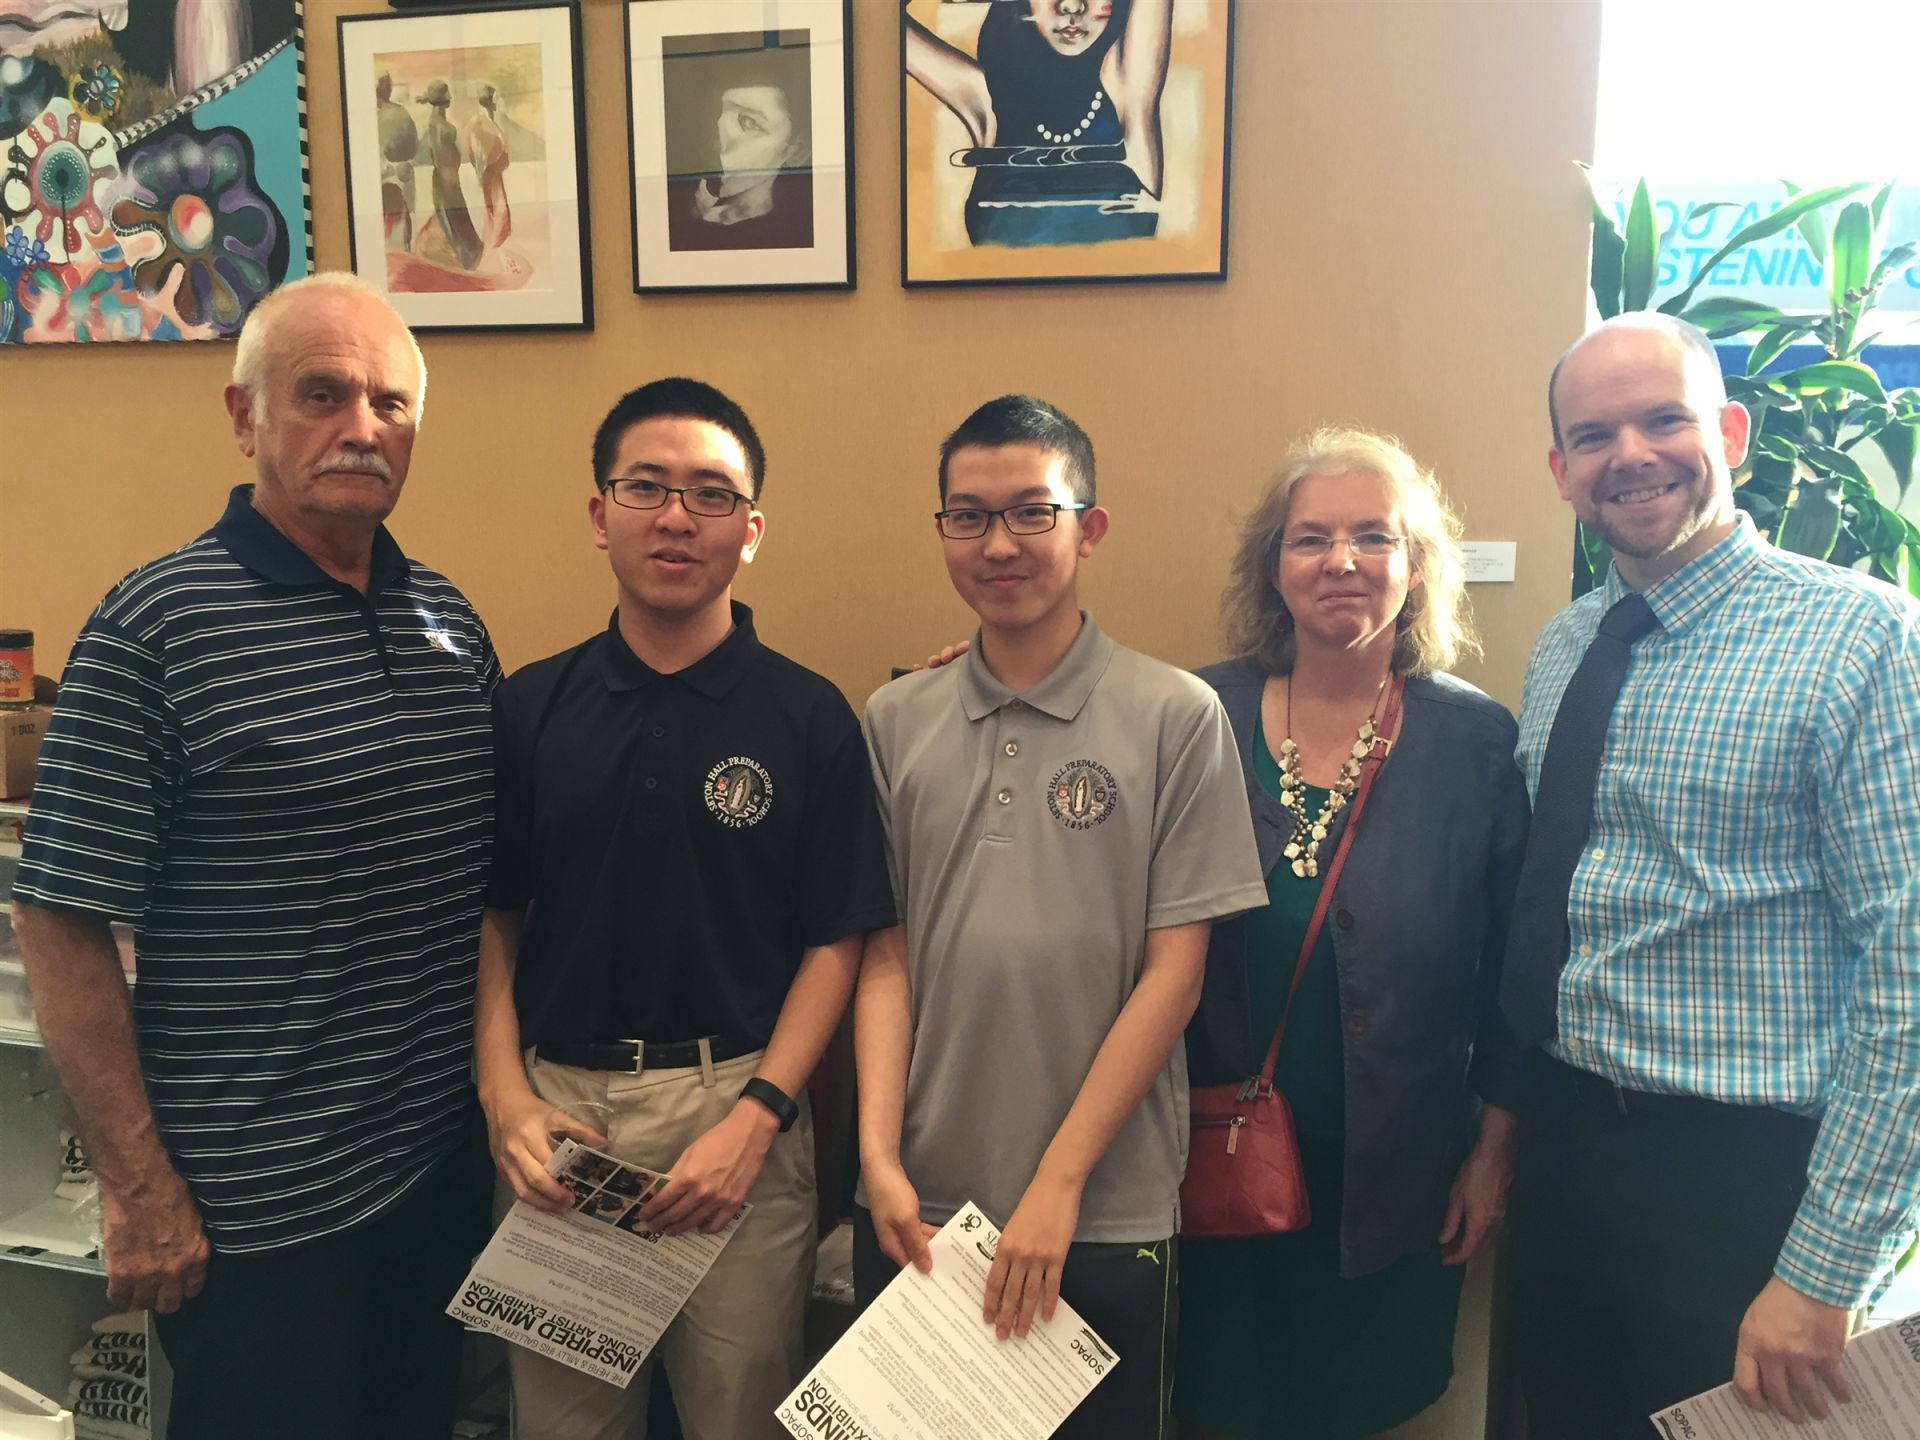 Host parents Vinnie and Liz McMahon and International Program Coordinator Michael Hegedus pose with Wenzhe Teng and Yuheng Chen under Yuheng's artwork at the South Orange Performing Arts Center.